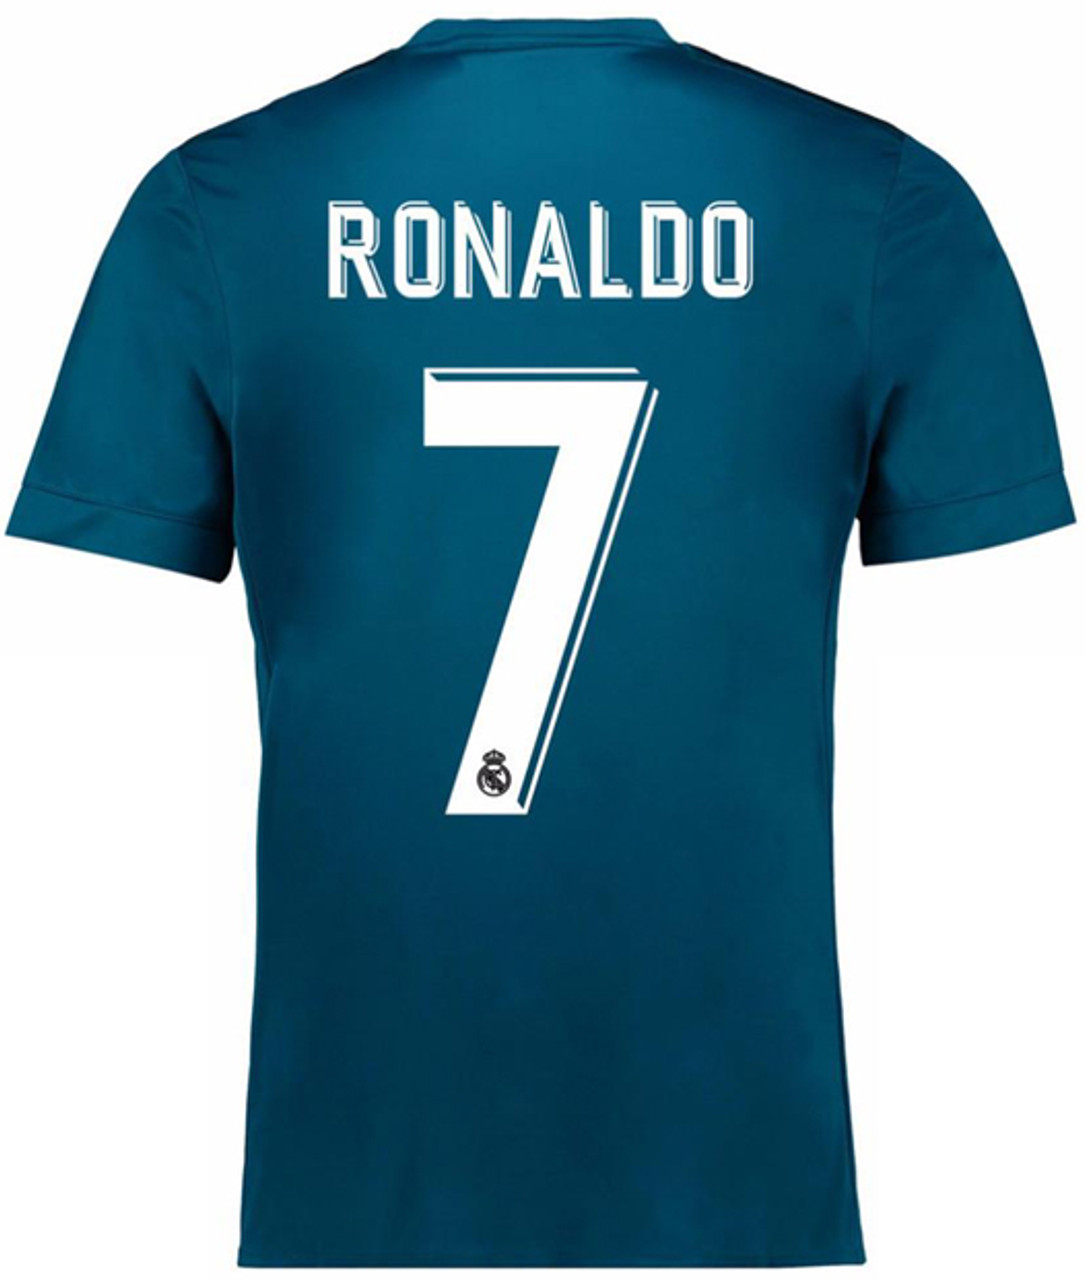 new product 8a2e4 760c7 ADIDAS REAL MADRID 2018 RONALDO 3RD JERSEY teal blue